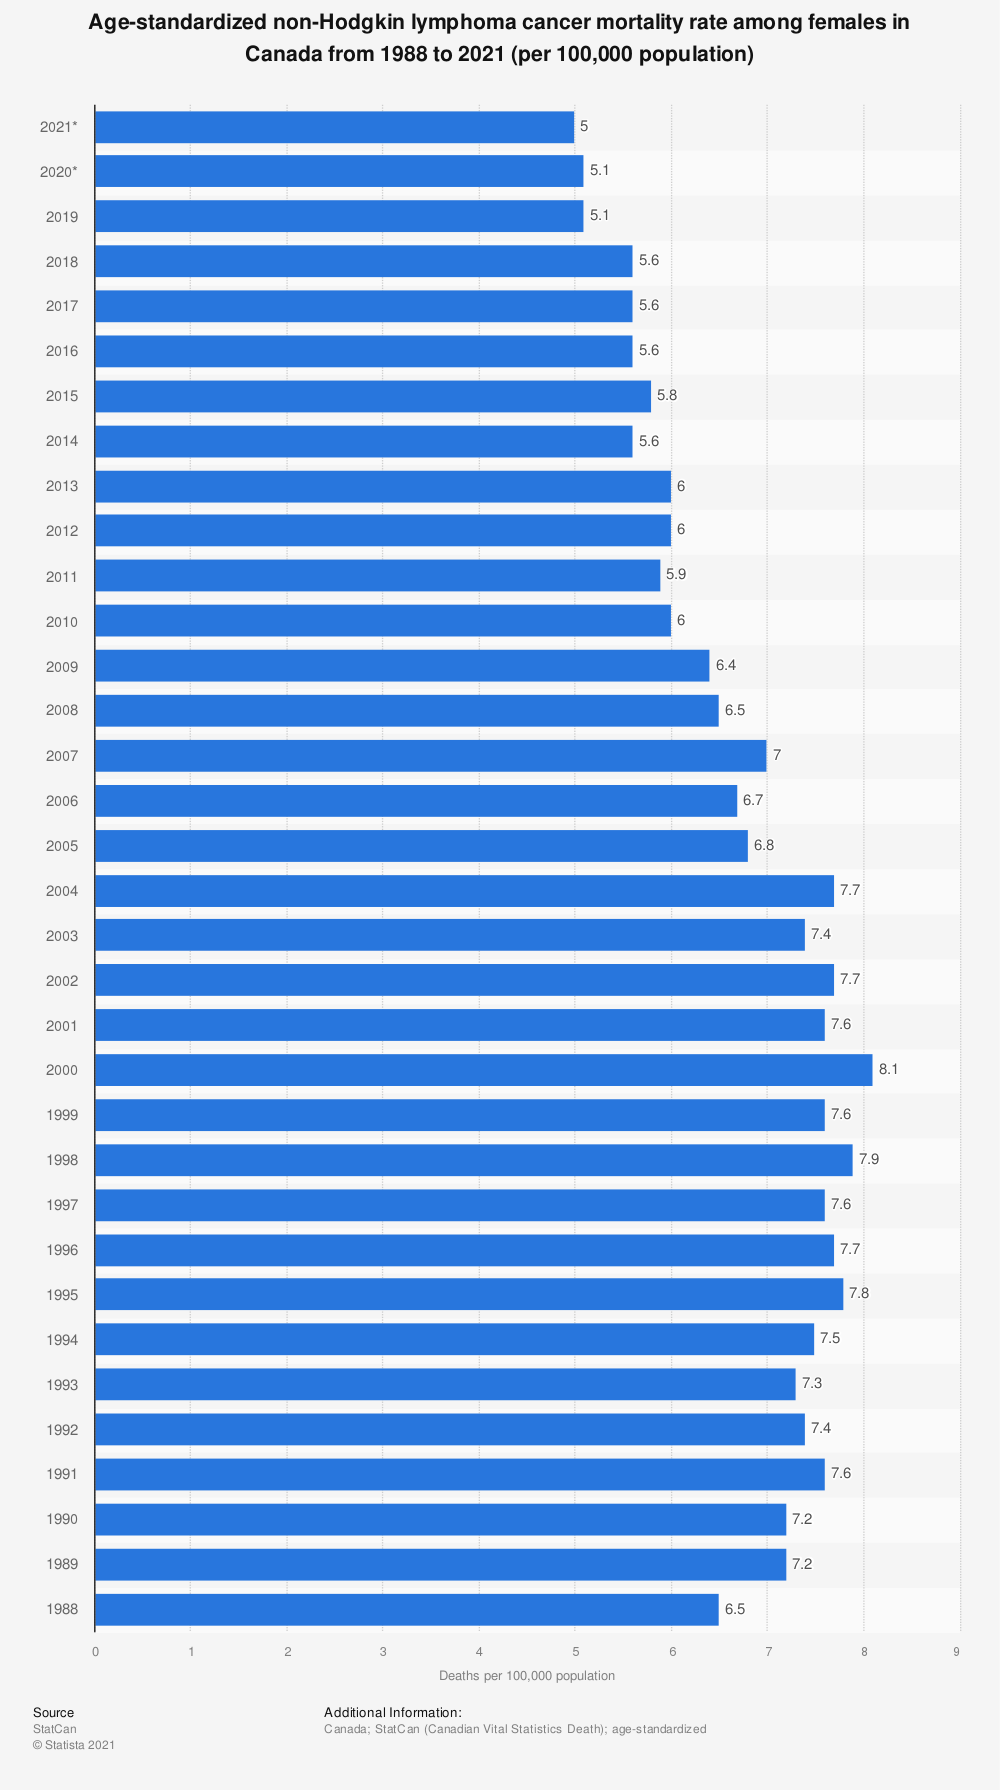 Statistic: Age-standardized non-Hodgkin lymphoma cancer mortality rate among females in Canada from 1988 to 2017 (per 100,000 population) | Statista